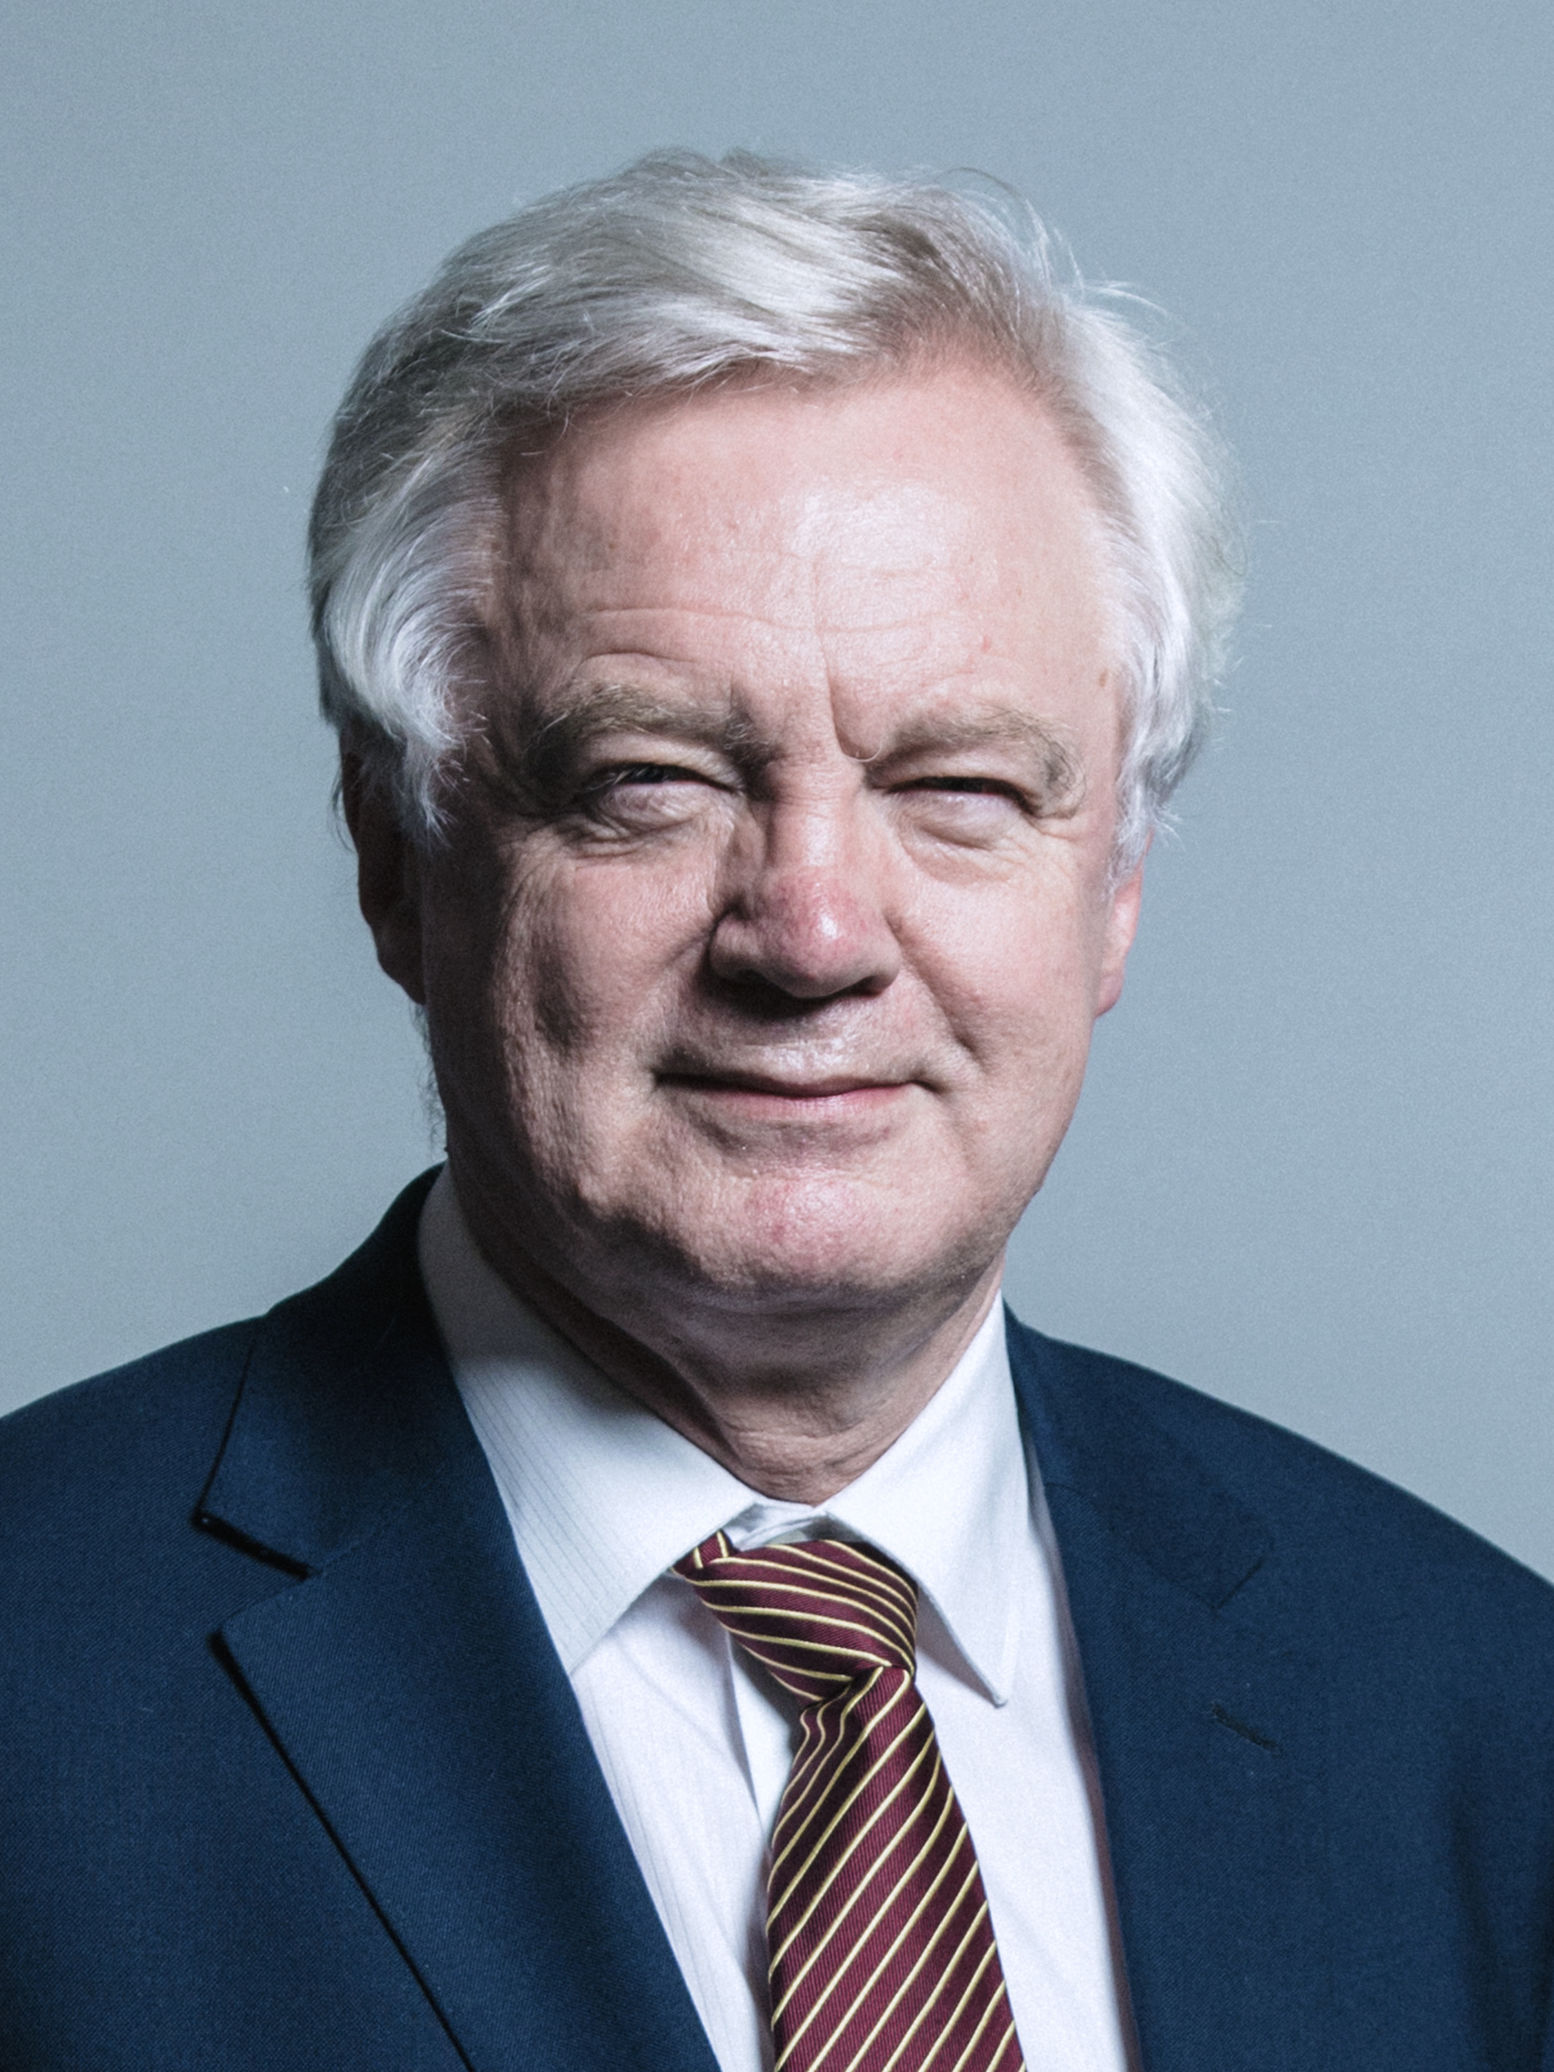 David Davis – 2021 Speech on the Budget